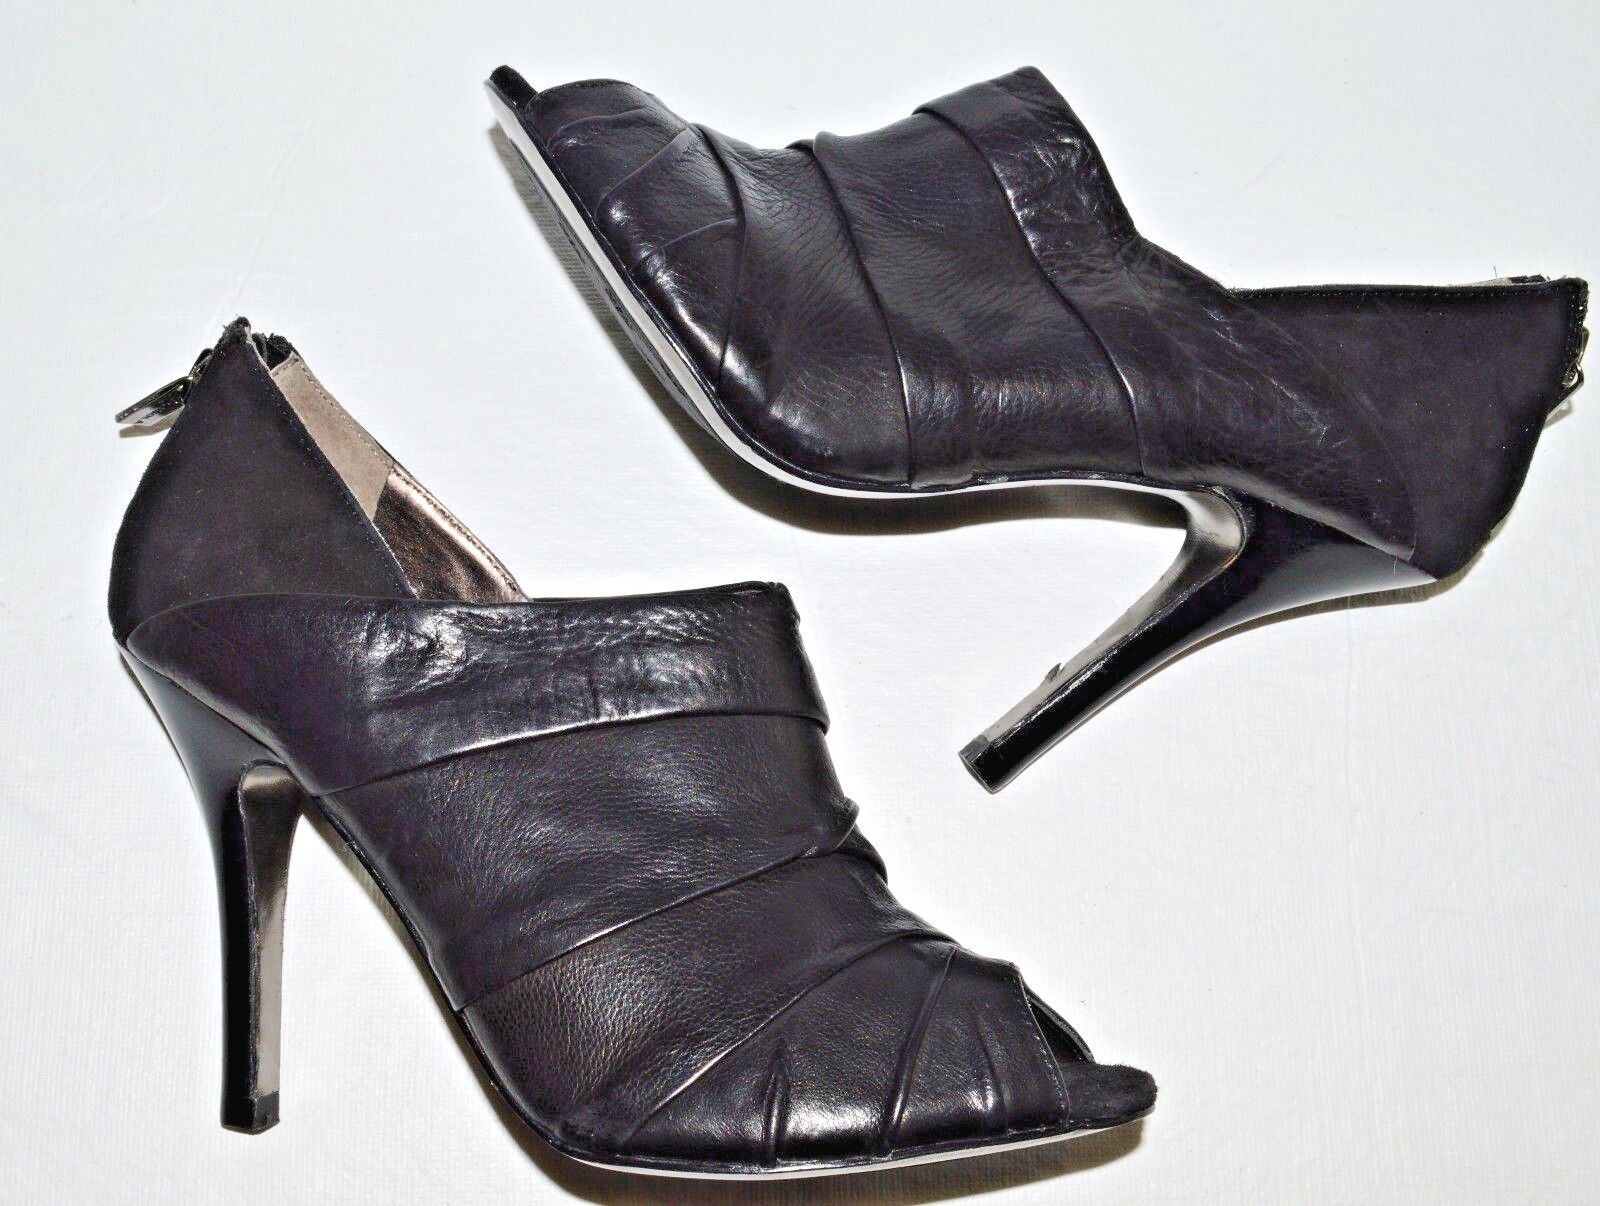 ISOLA NEW SZ 6.5 M BLACK LEATHER OPEN Schuhe TOE BOOTIES PUMPS HEELS Schuhe OPEN 546965